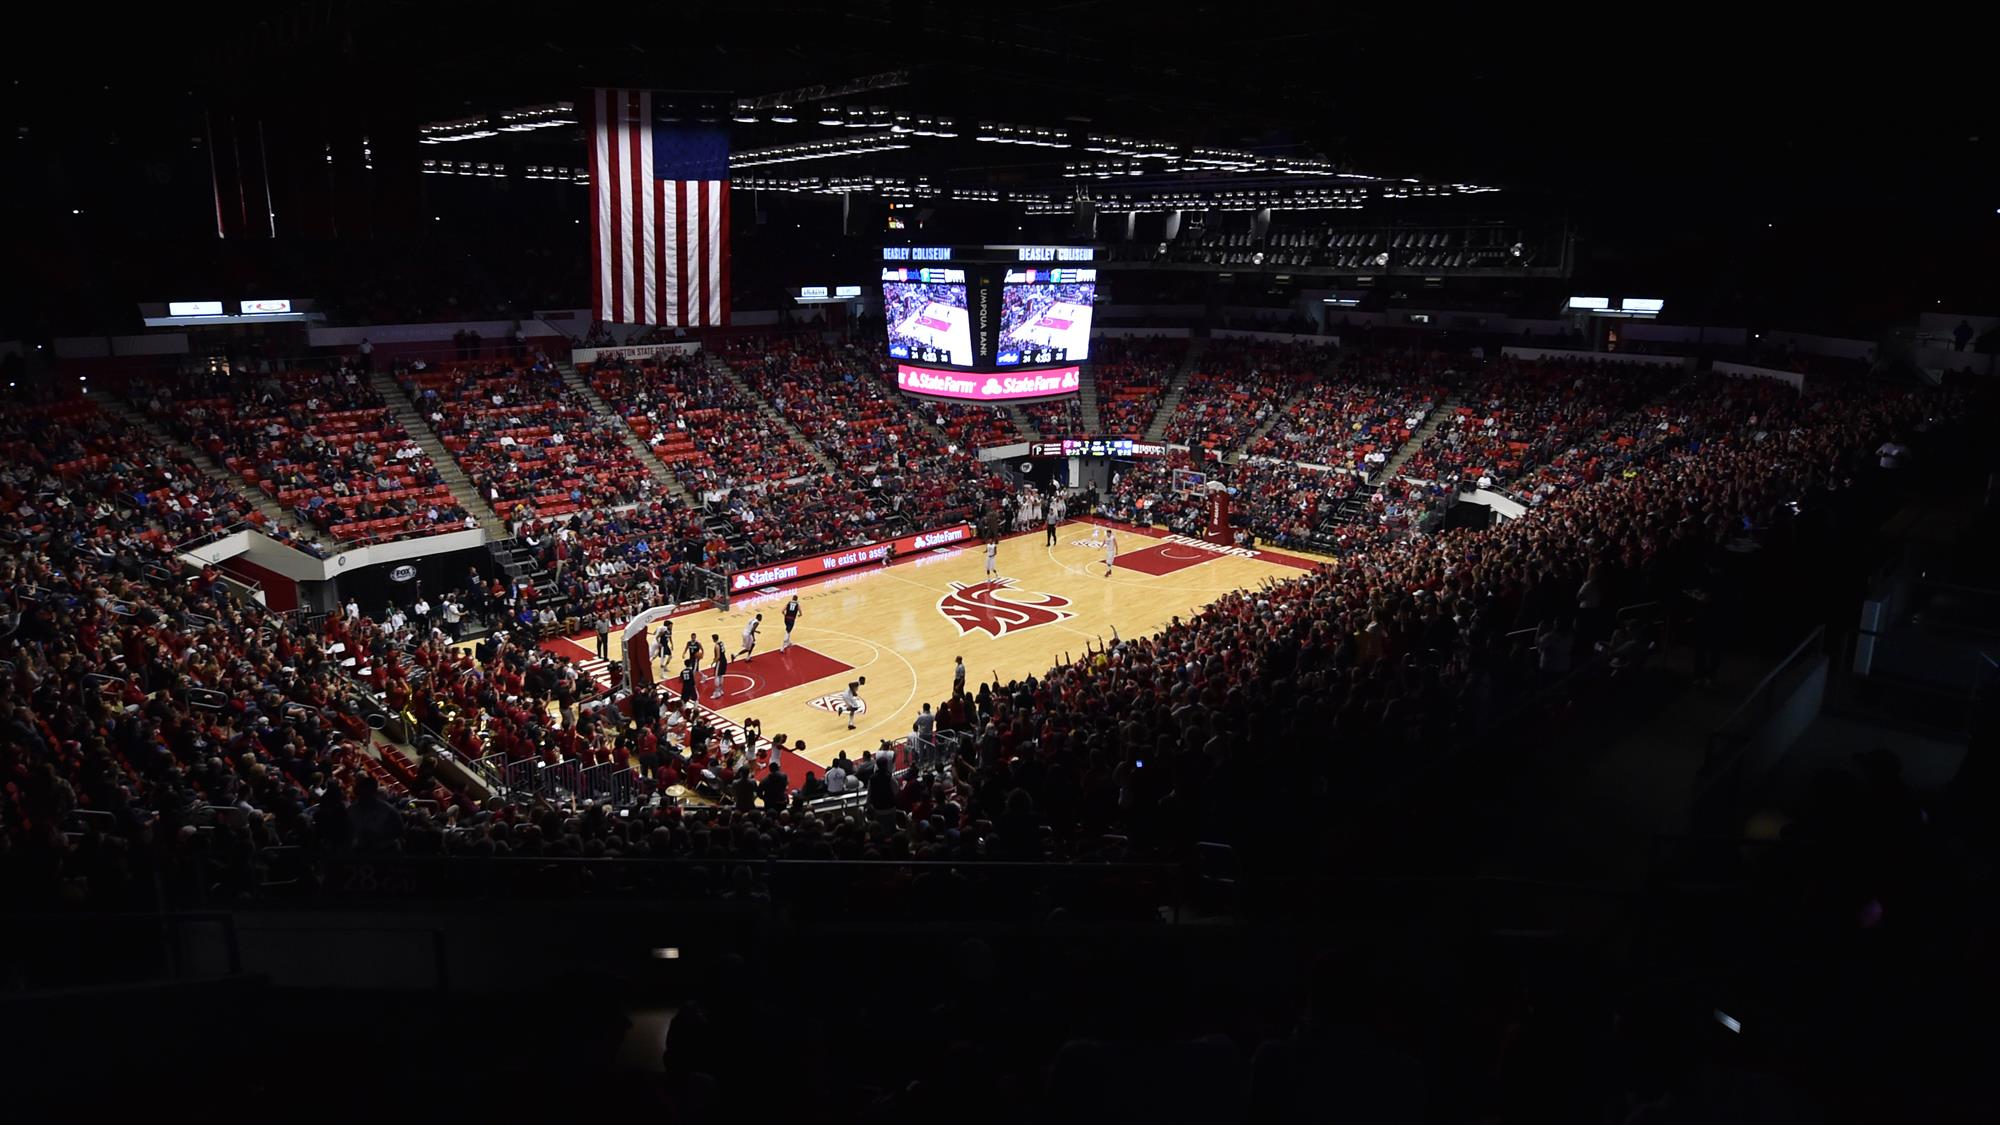 Beasleycoliseum2015_16_010_web